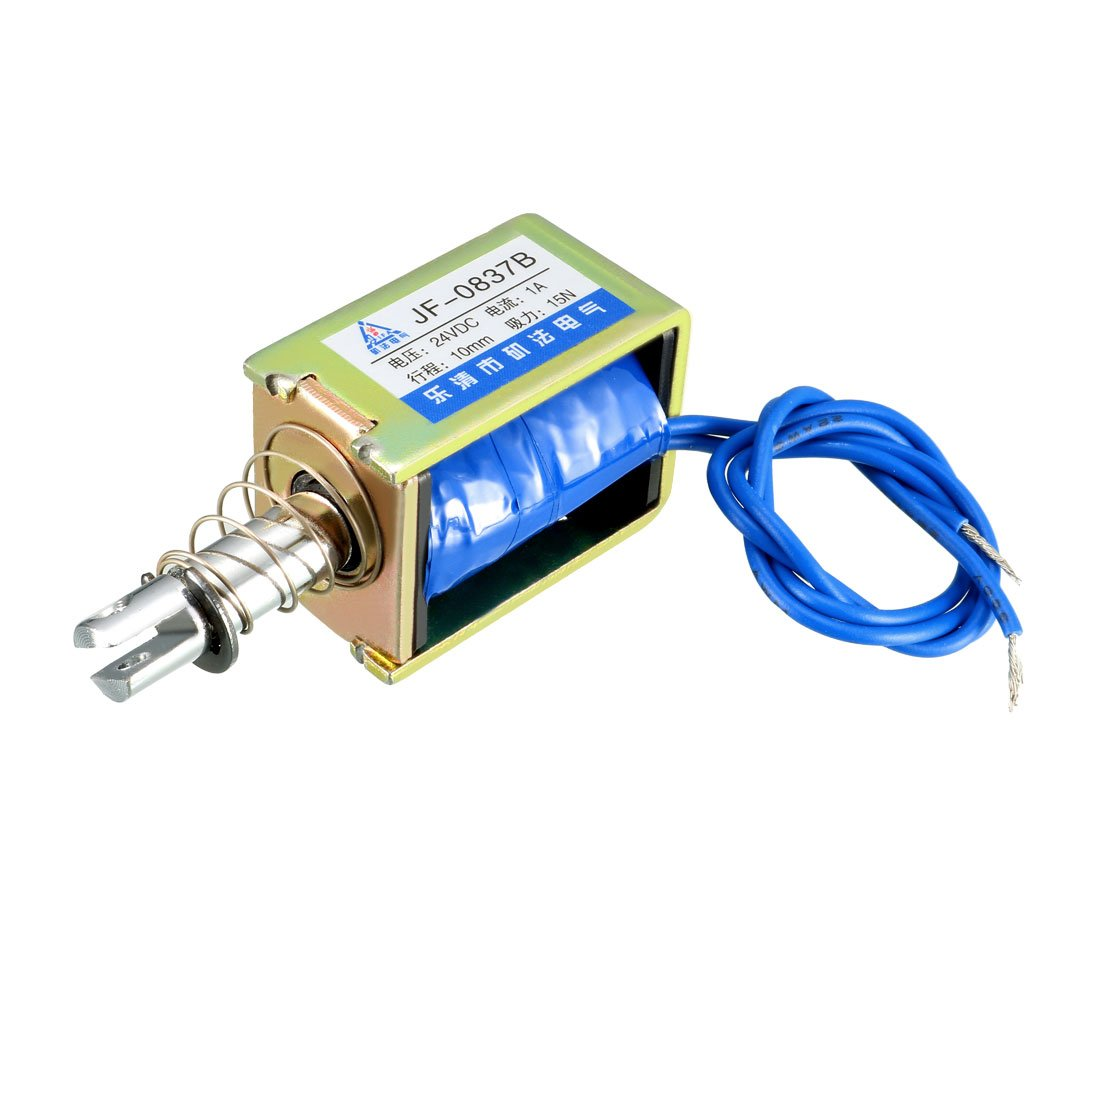 uxcell JF-0837B DC 24V 1A 15N 10mm Pull Type Open Frame Linear Motion Solenoid Electromagnet